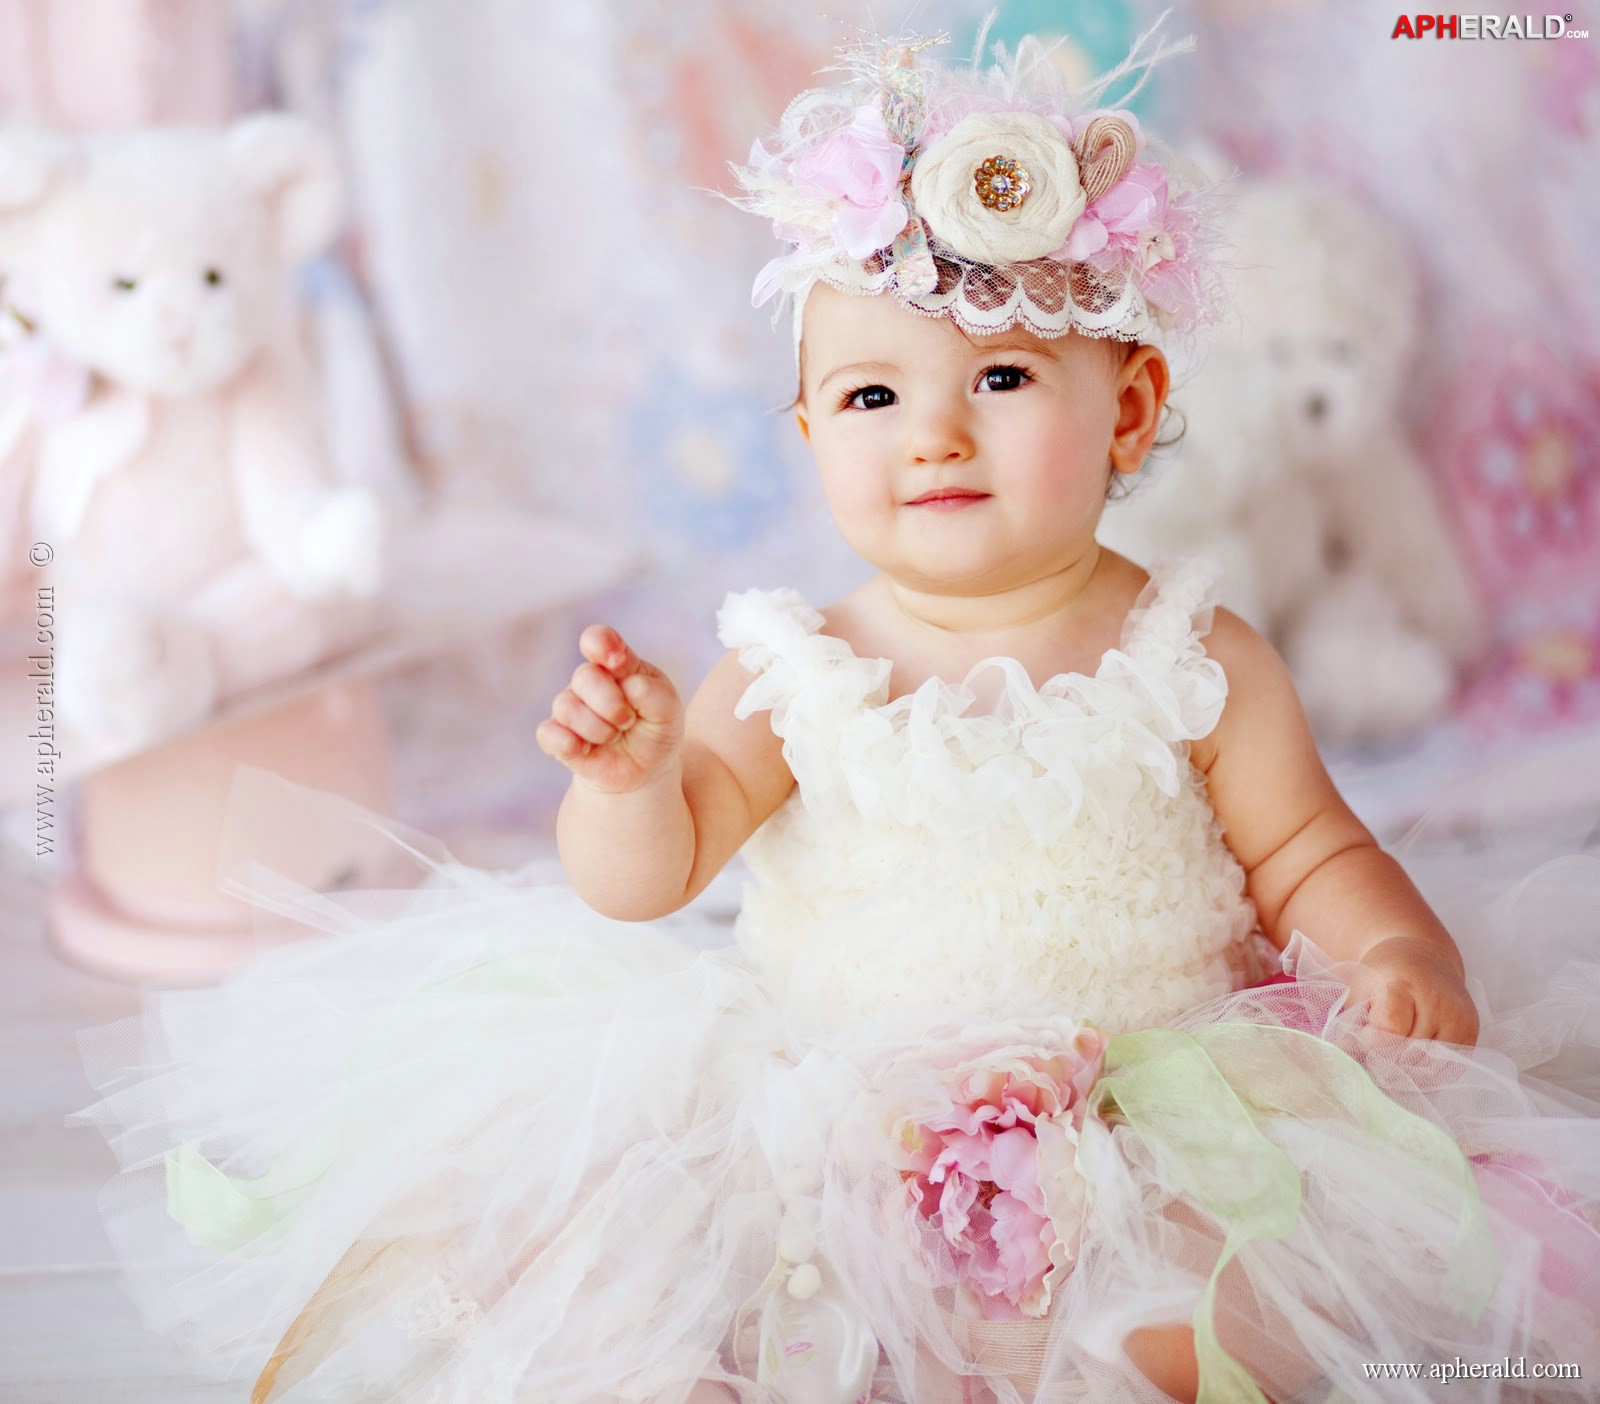 New beautiful cute baby images download